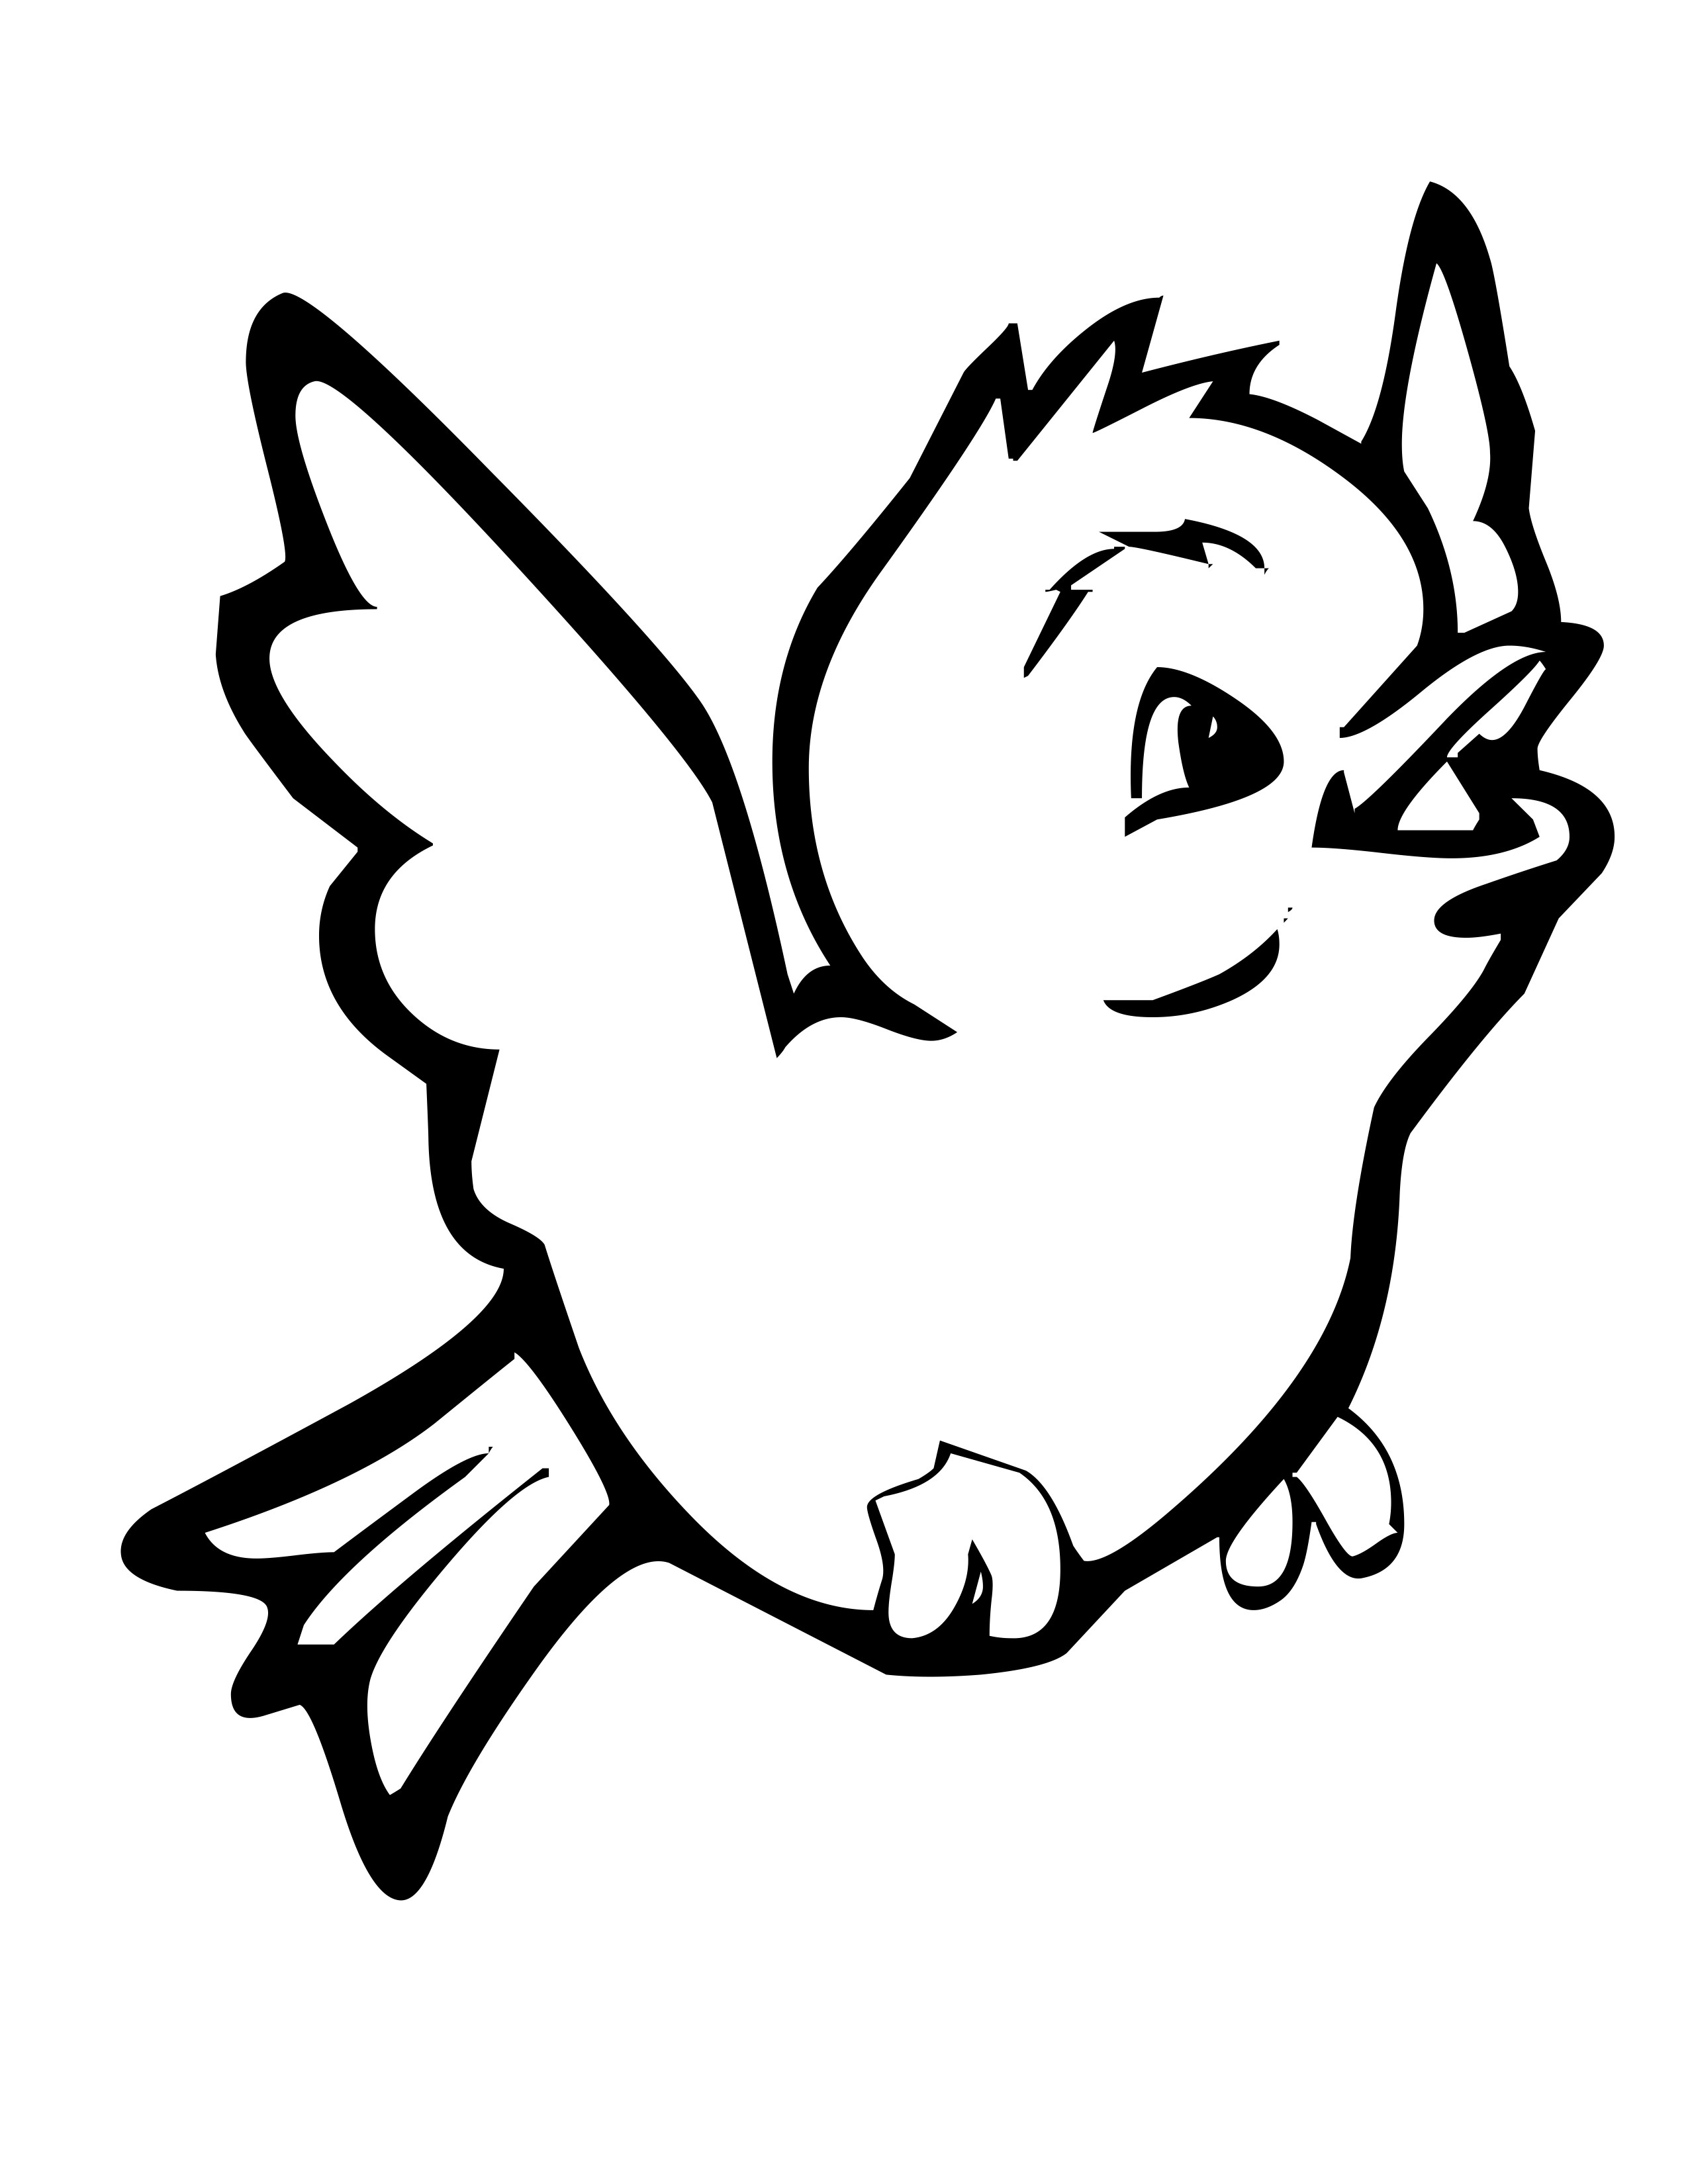 coloring bird for kids cute bird coloring pages bird kids for coloring